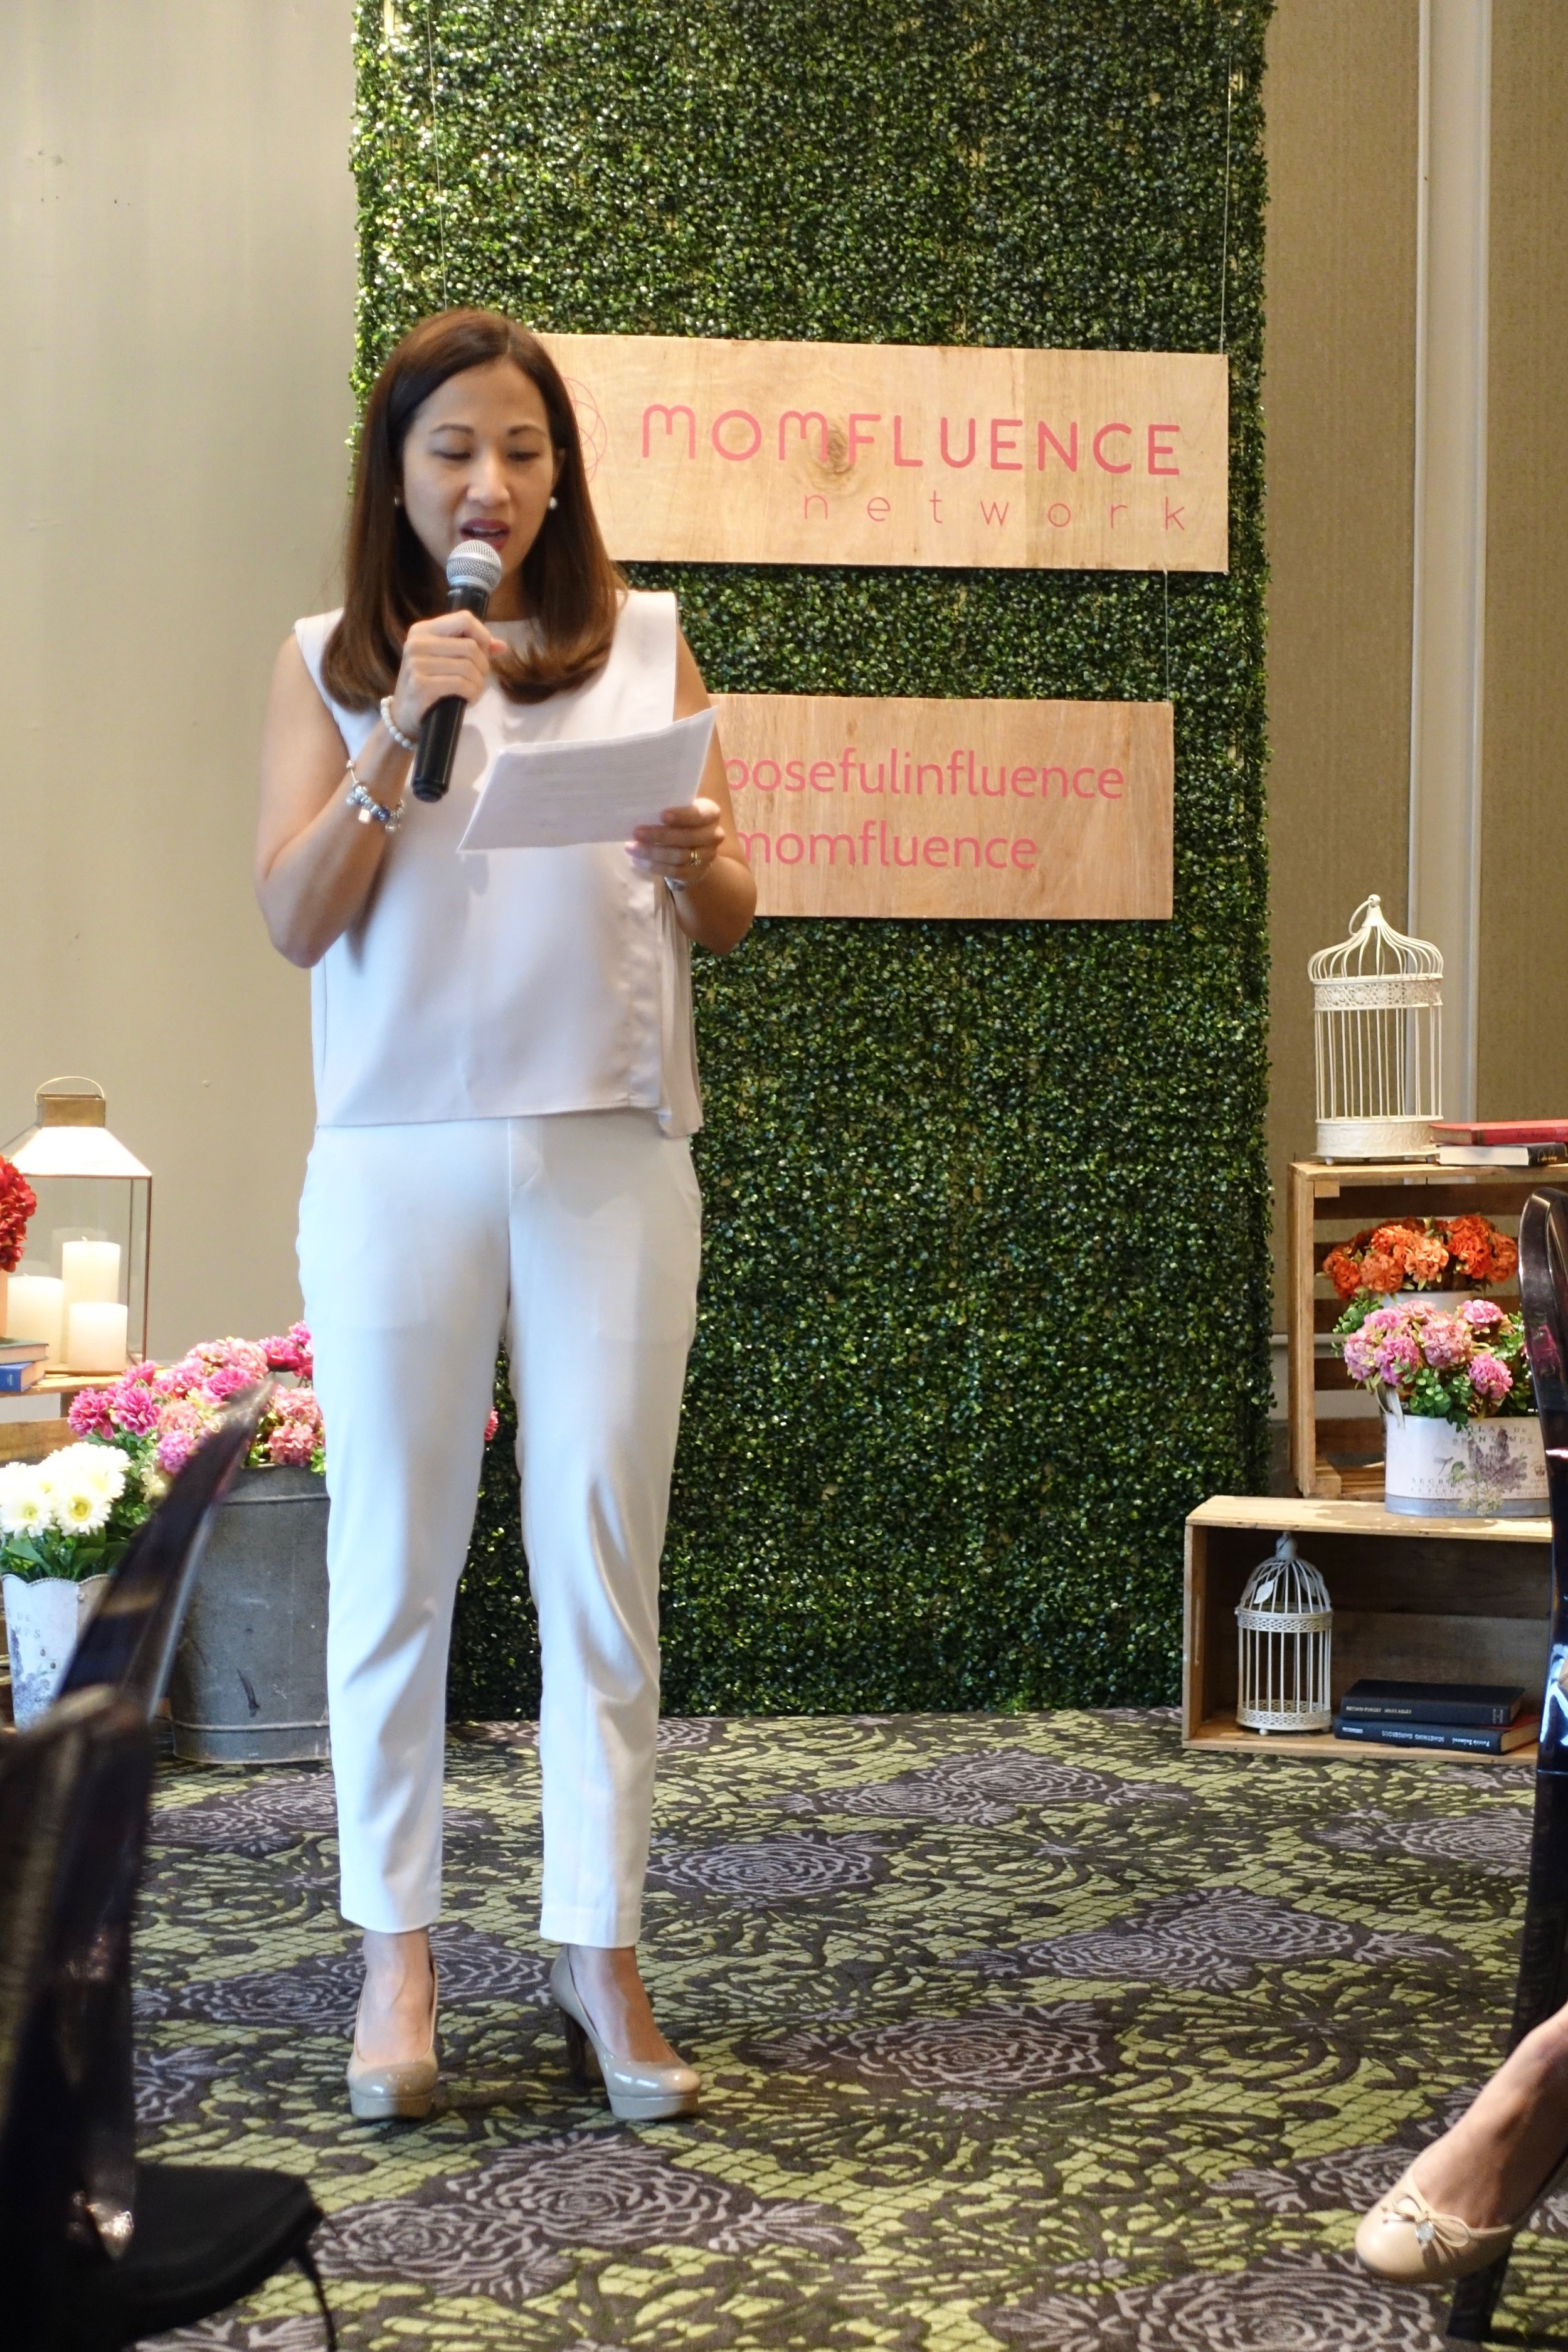 MOMMY MUNDO - OUR FEARLESS LEADER AND DOER OF GOOD, JANICE VILLANUEVA